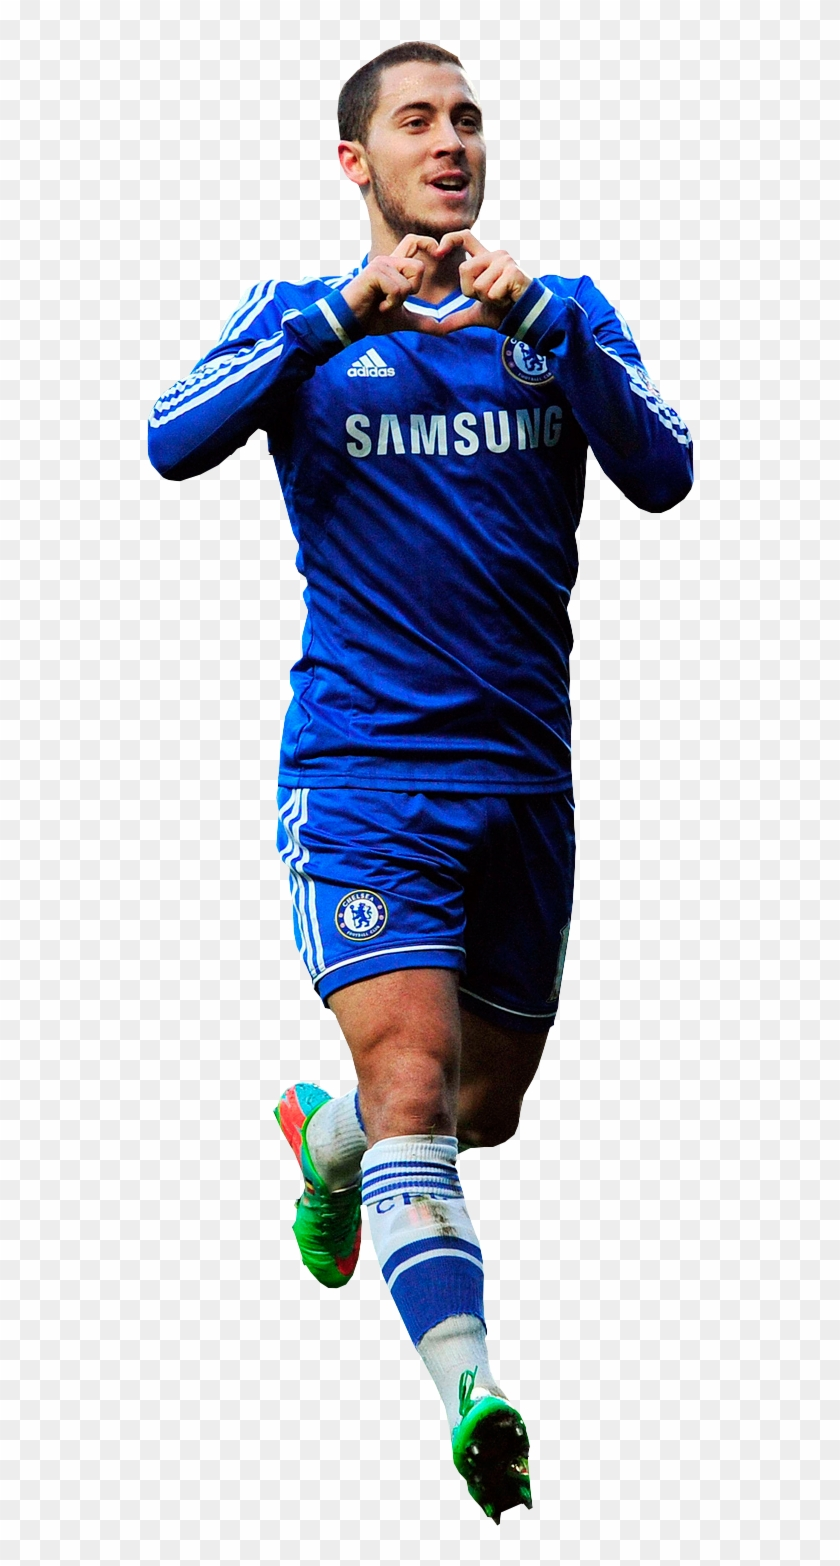 Eden Hazard Of Chelsea Fc Is On The 2013.